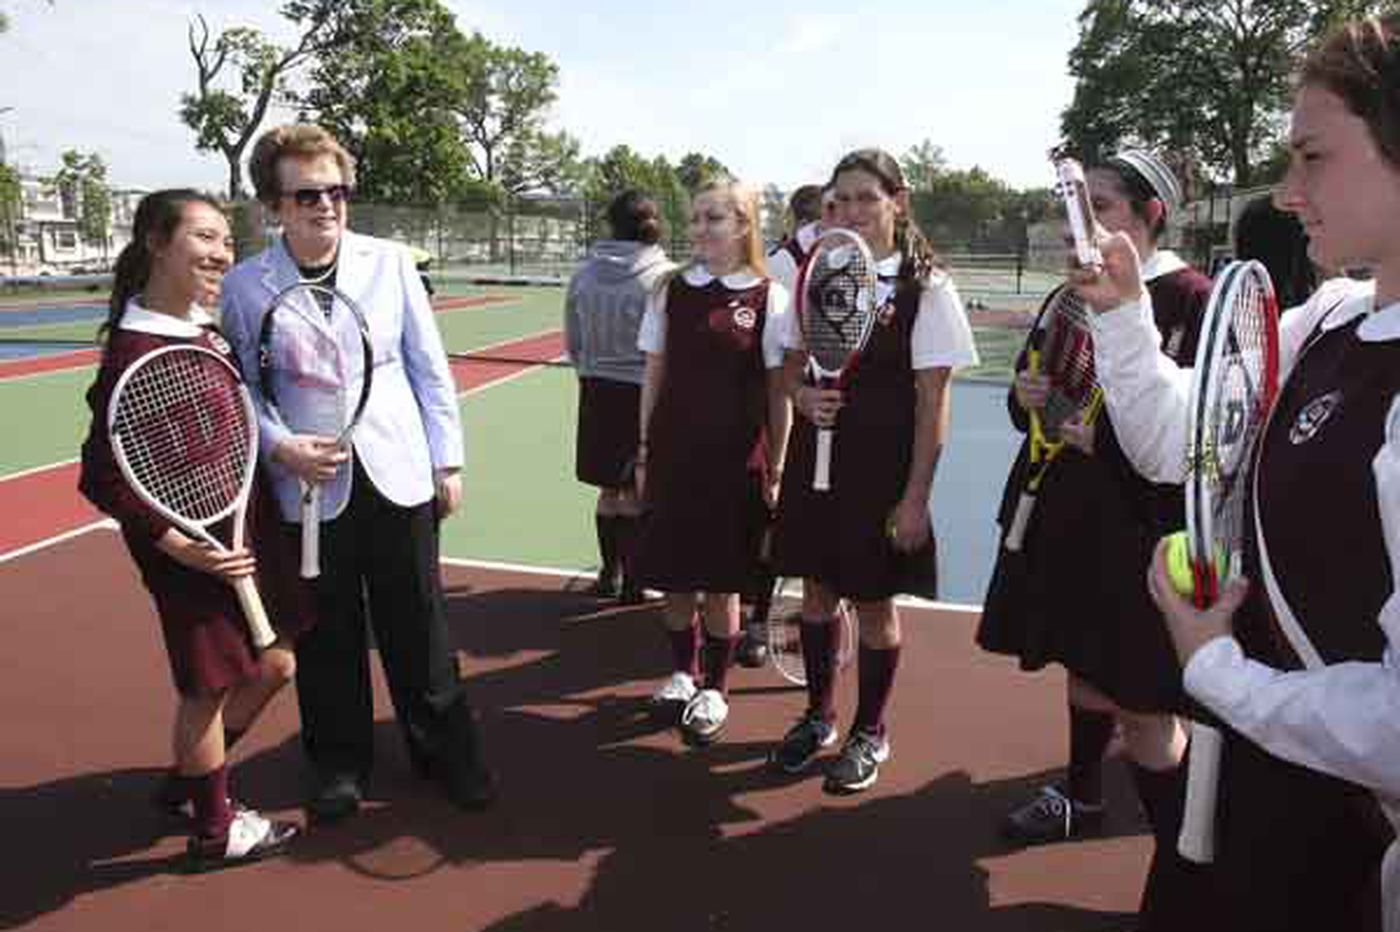 Tennis icon Billie Jean King helps open Hunting Park courts